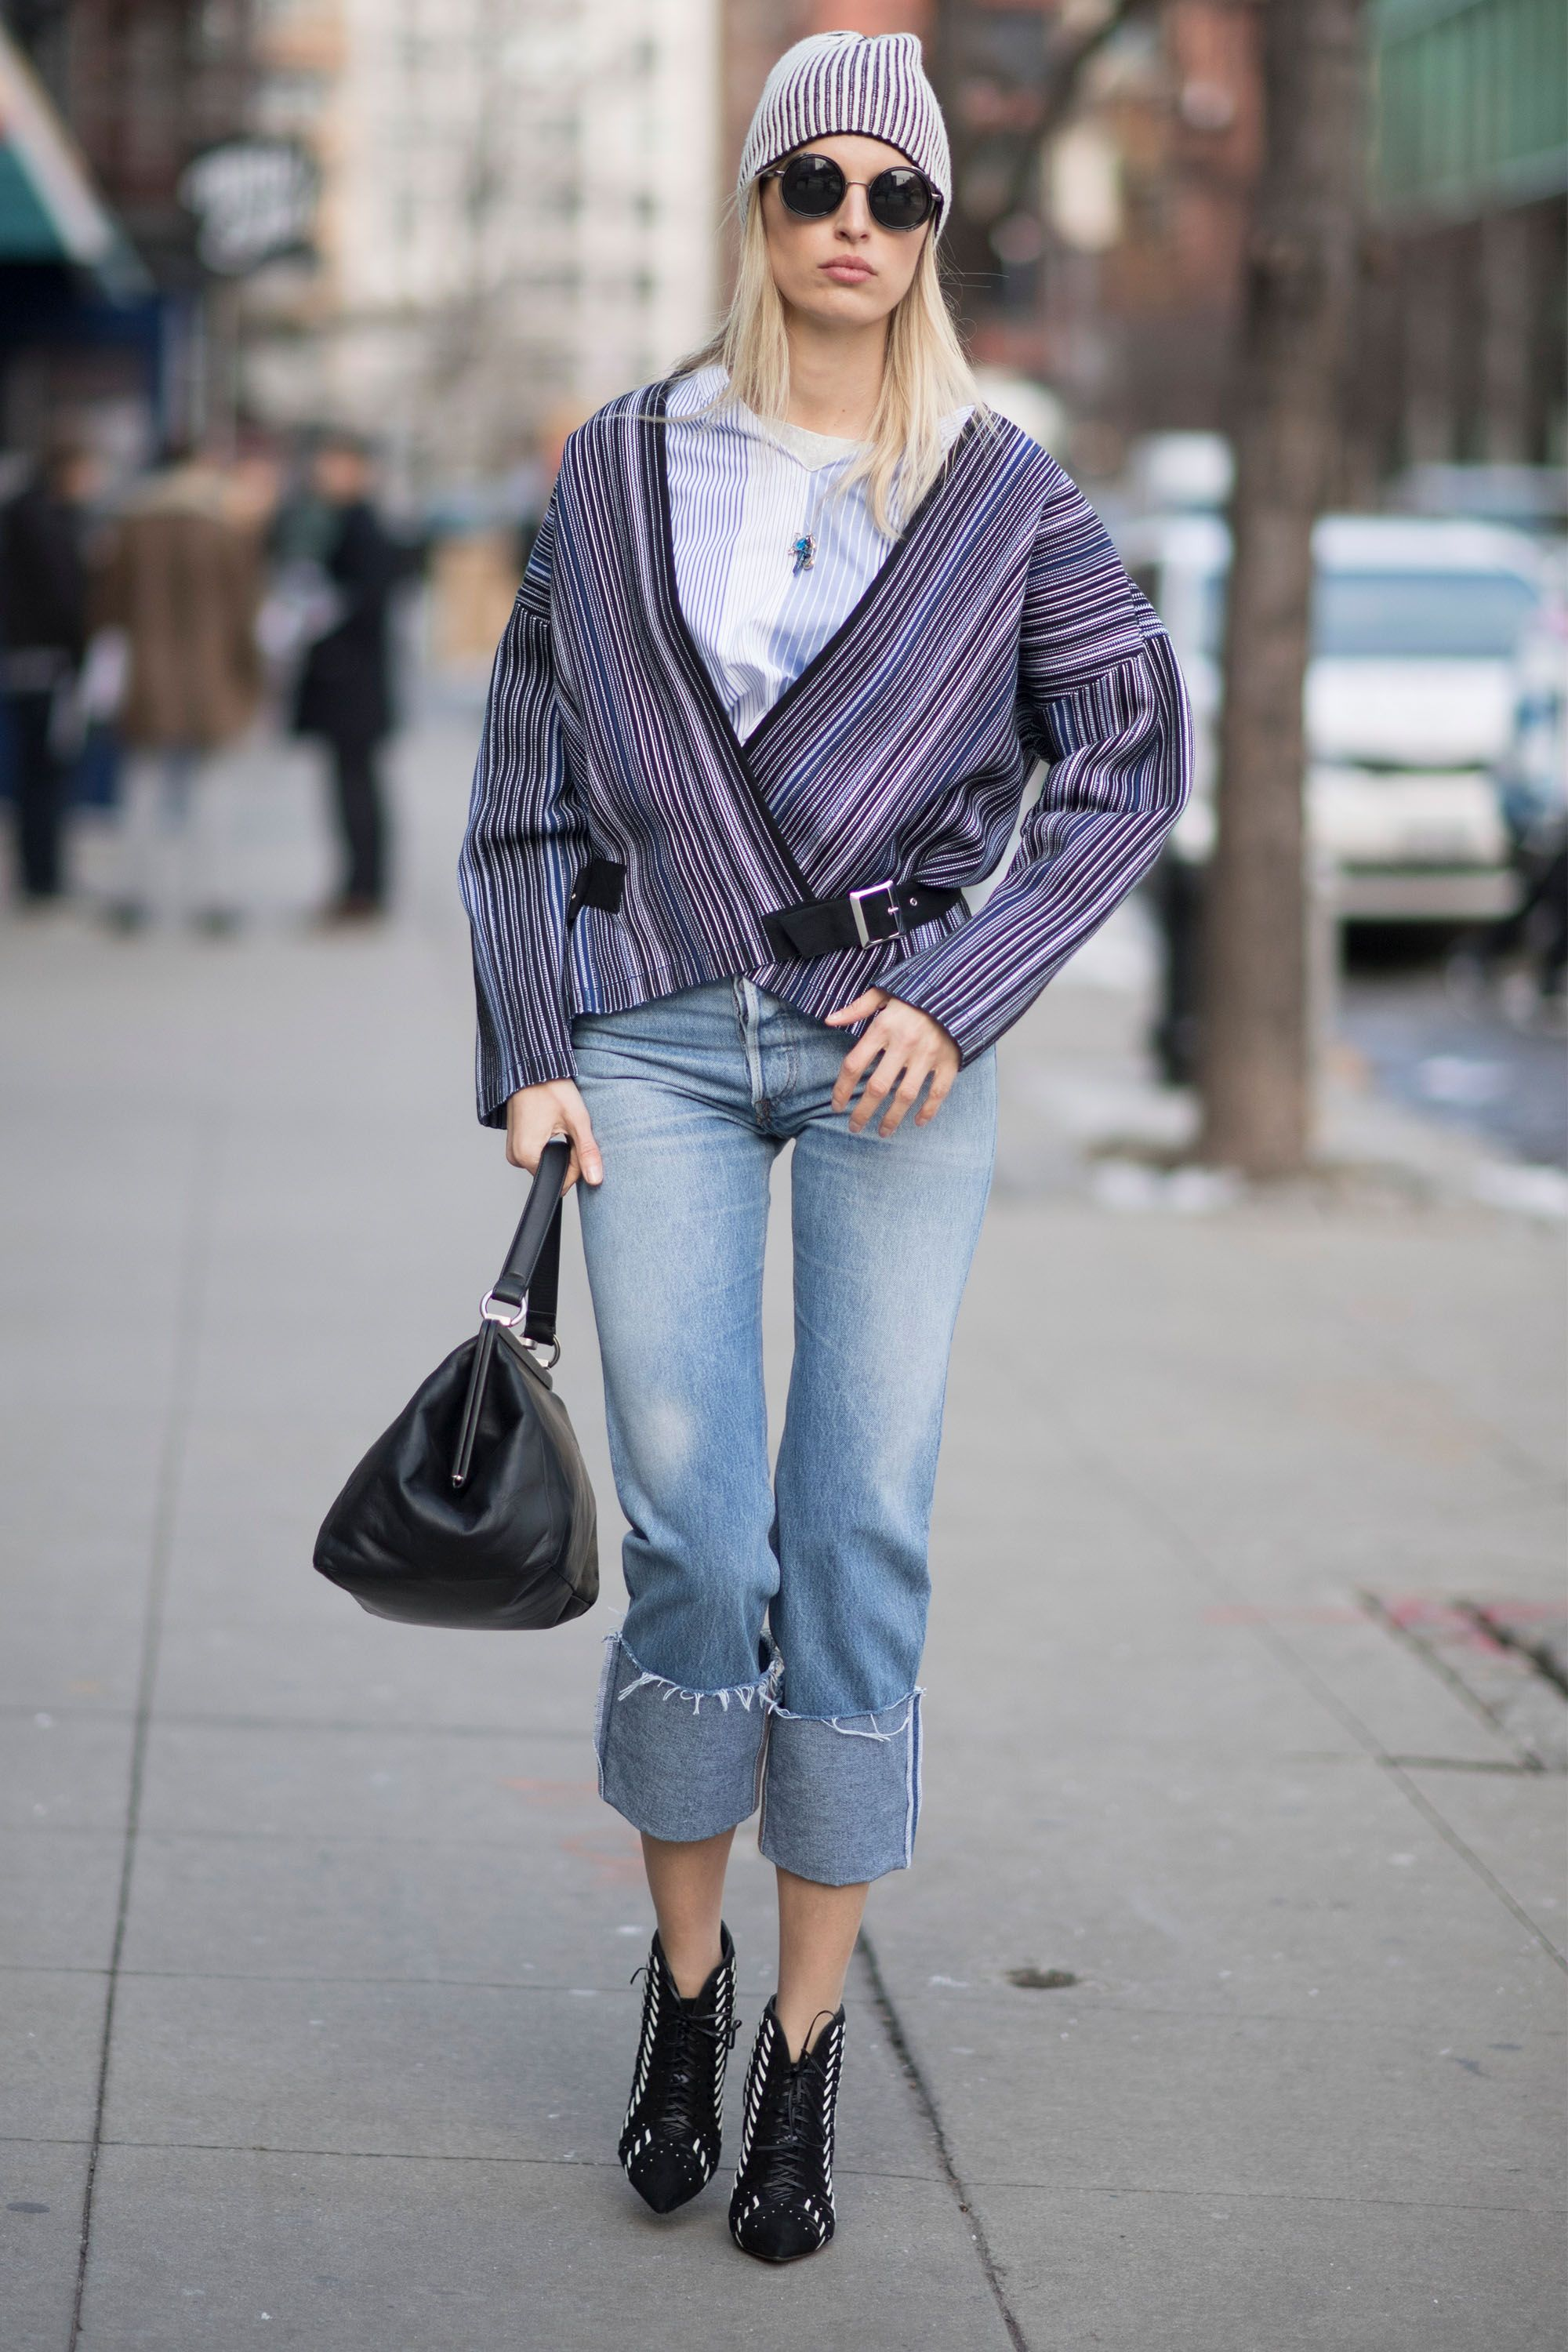 7b999508c18 How to wear booties with jeans and booties style jpg 480x720 Jeans and boots  outfits